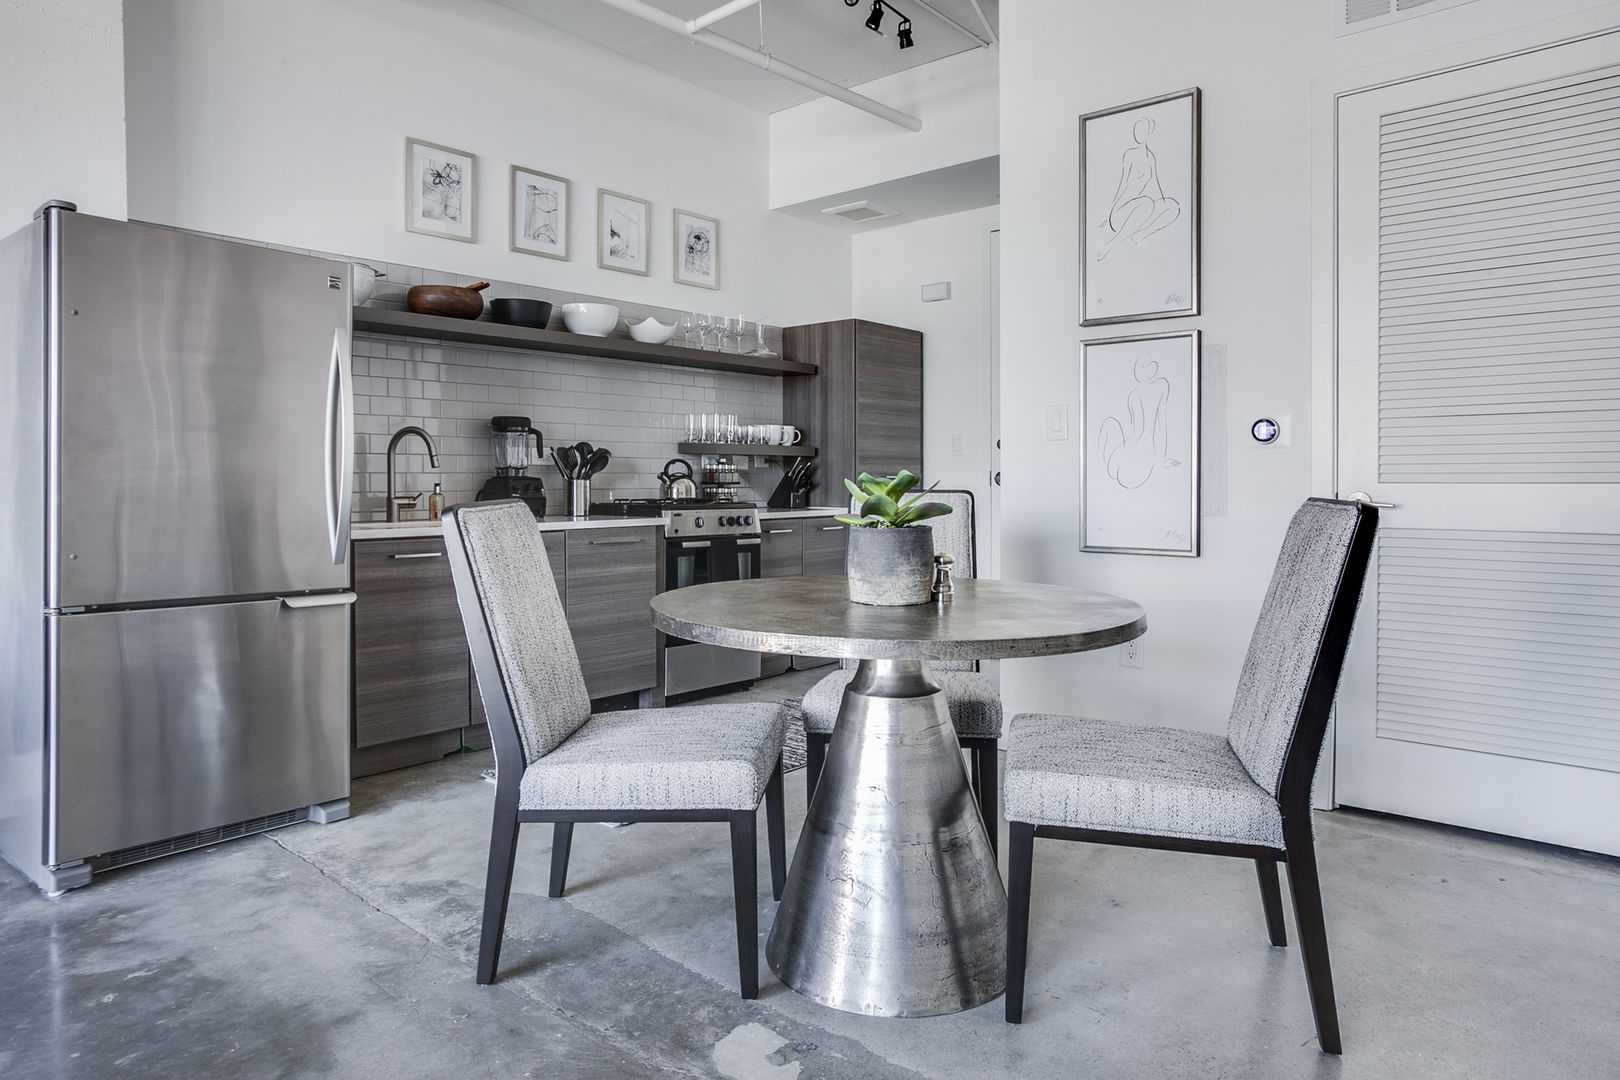 Dining area and kitchen of this Ponce City Market rental with modern appliances and a table for three.